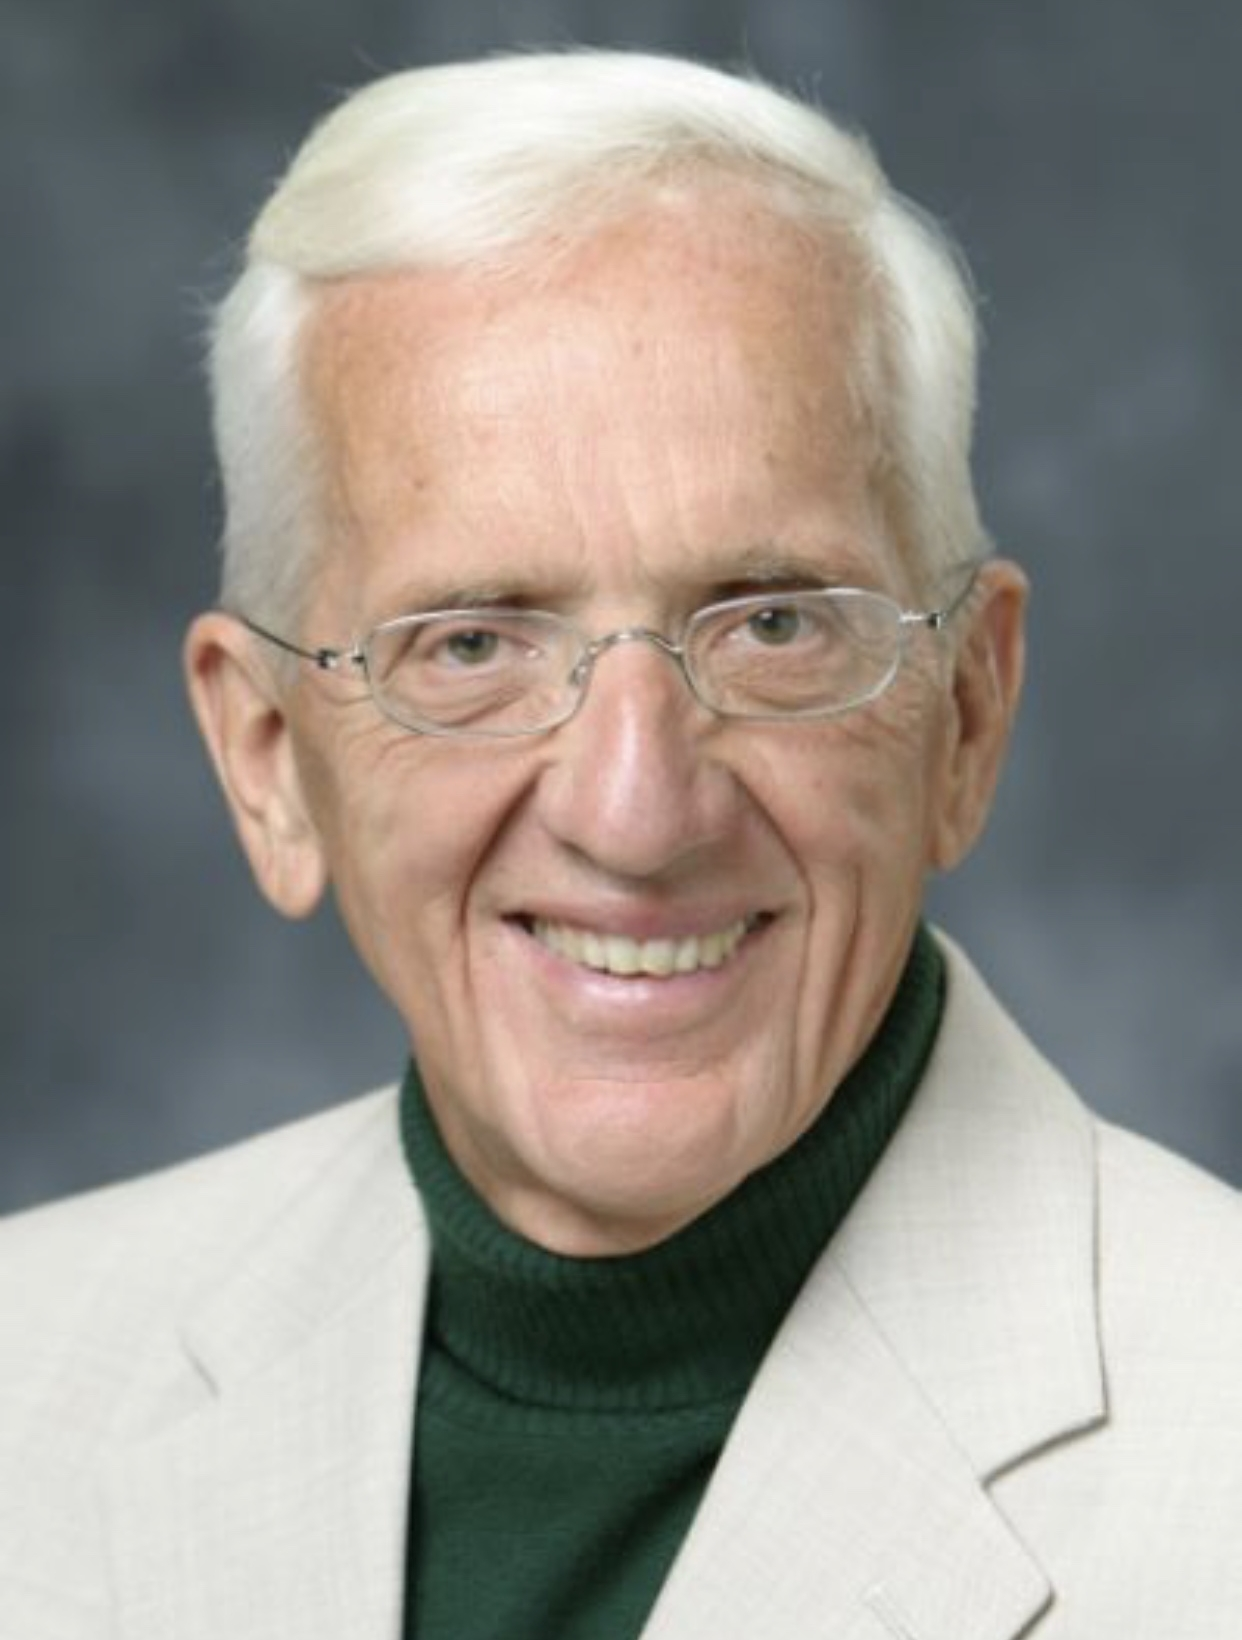 Dr. Colin Campbell